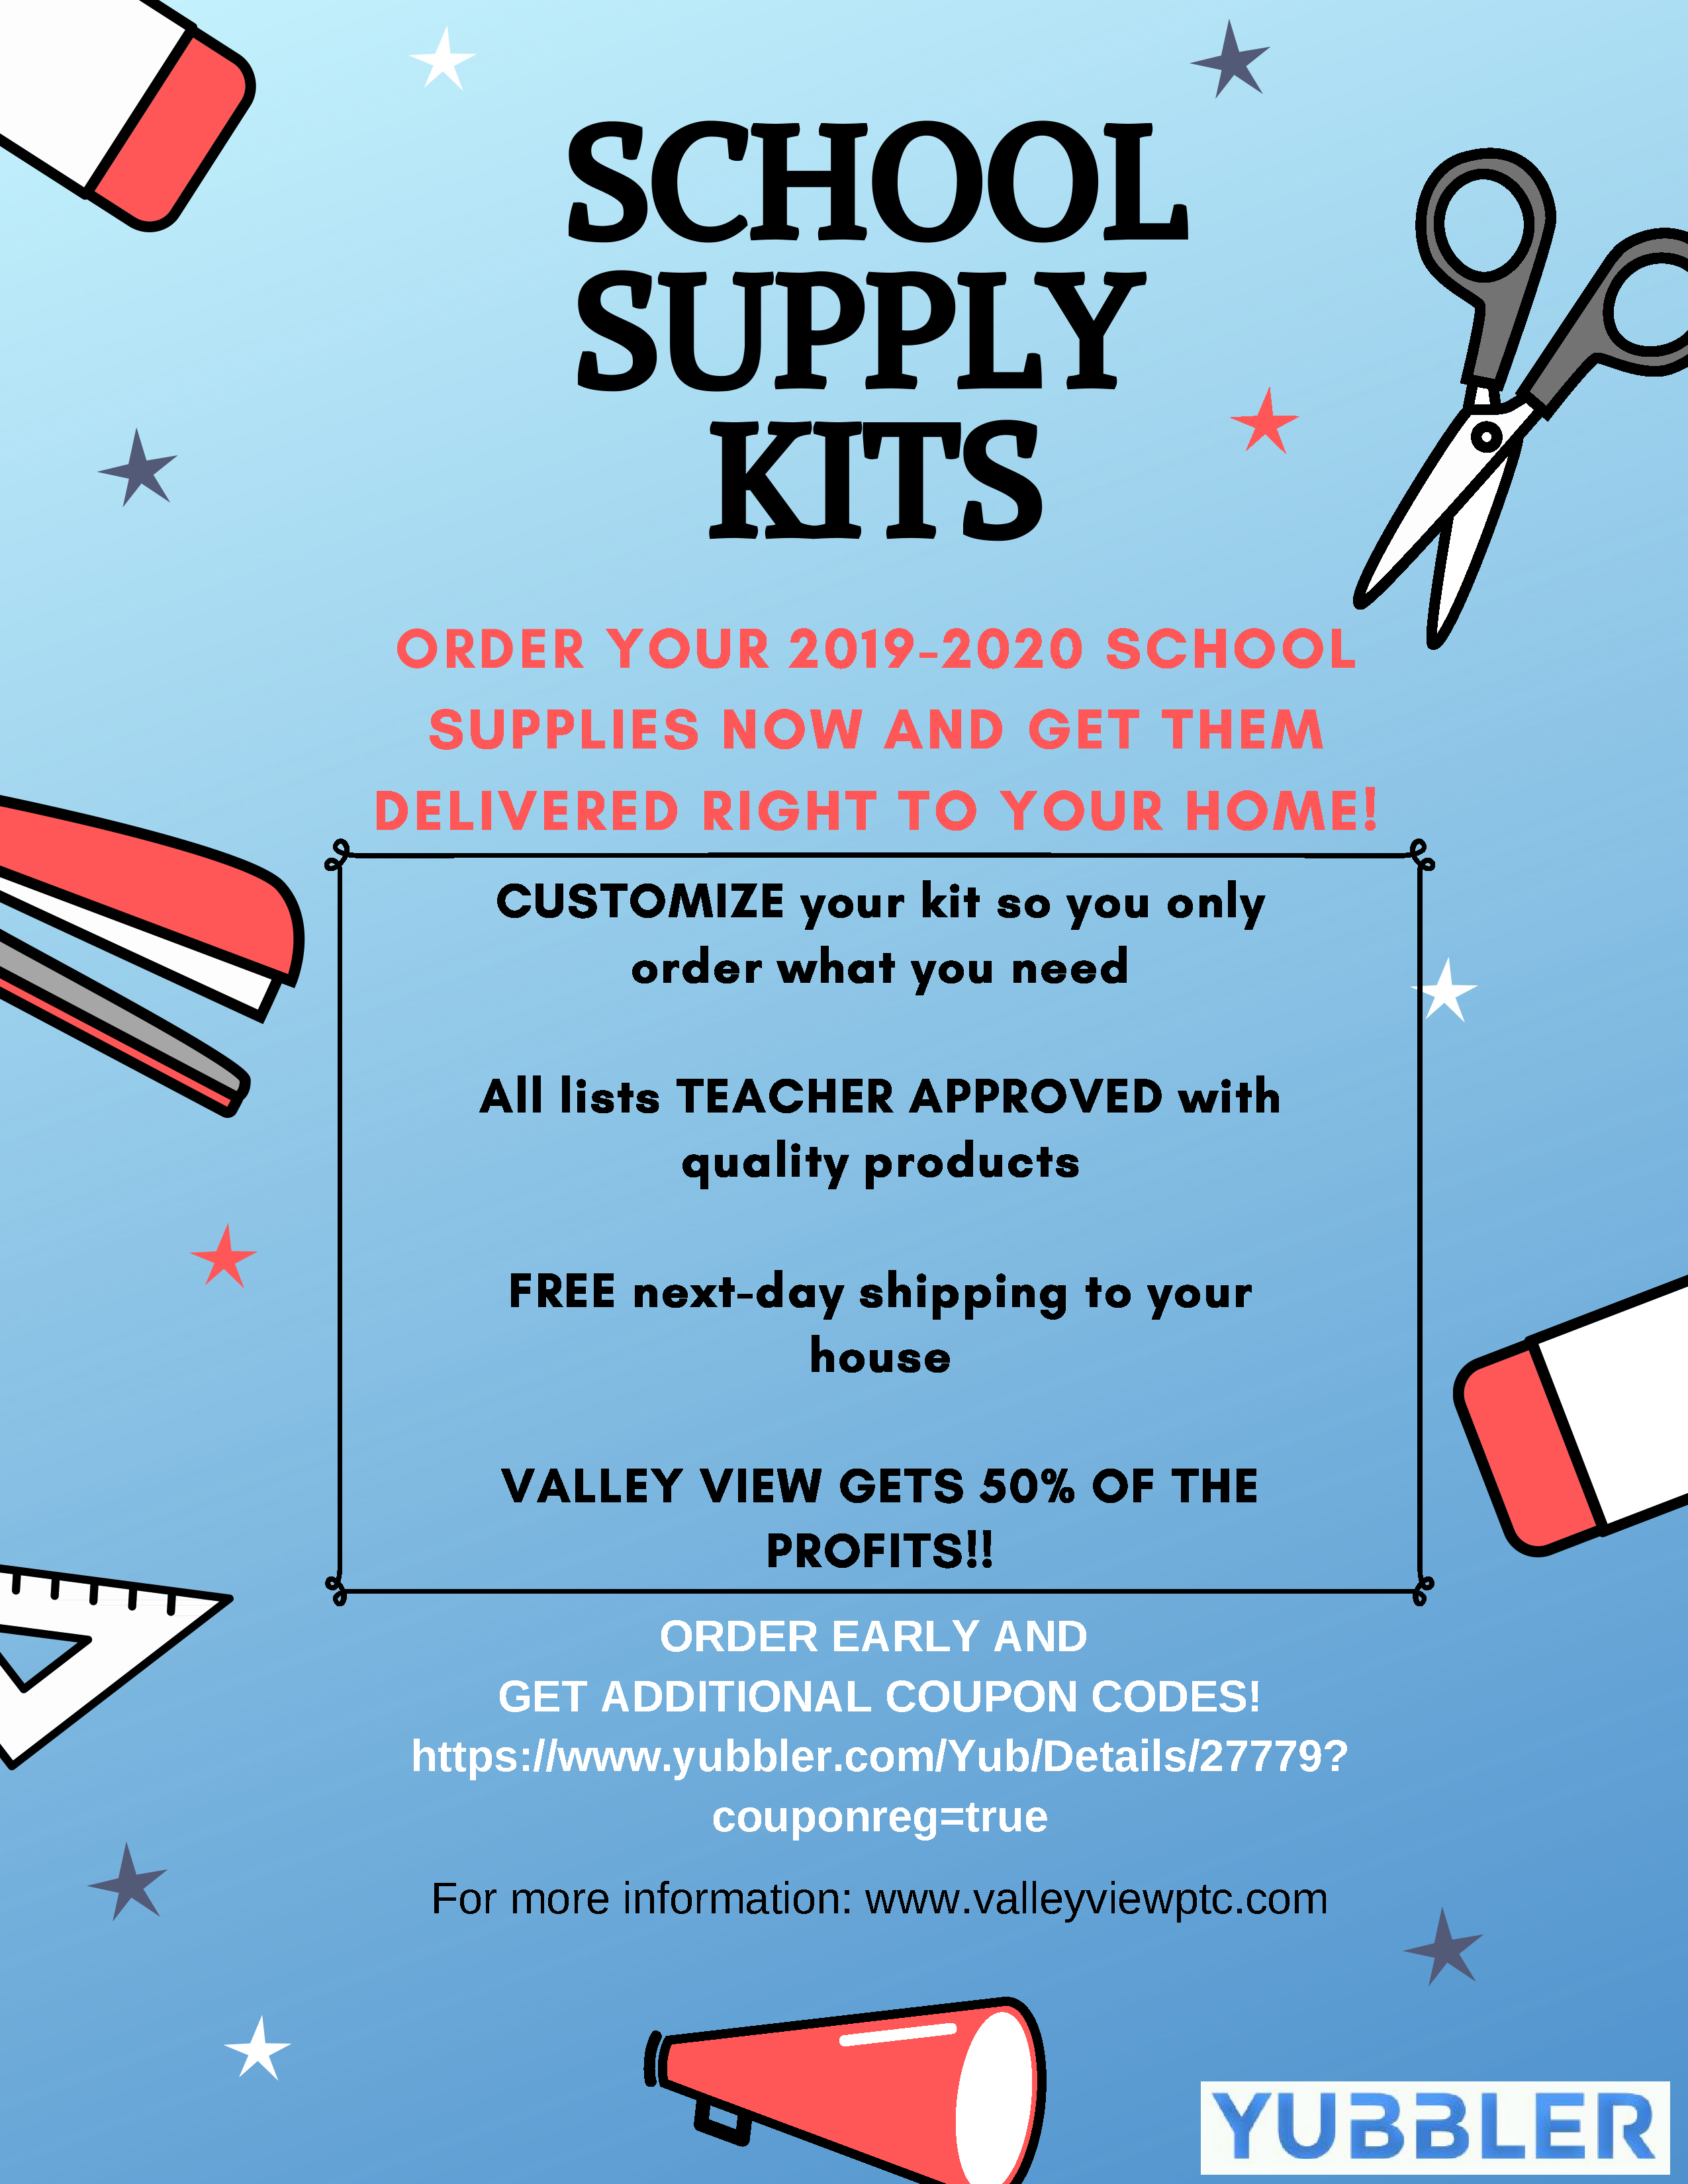 Get Your School Supplies for 2019-2020! – Valley View Parent